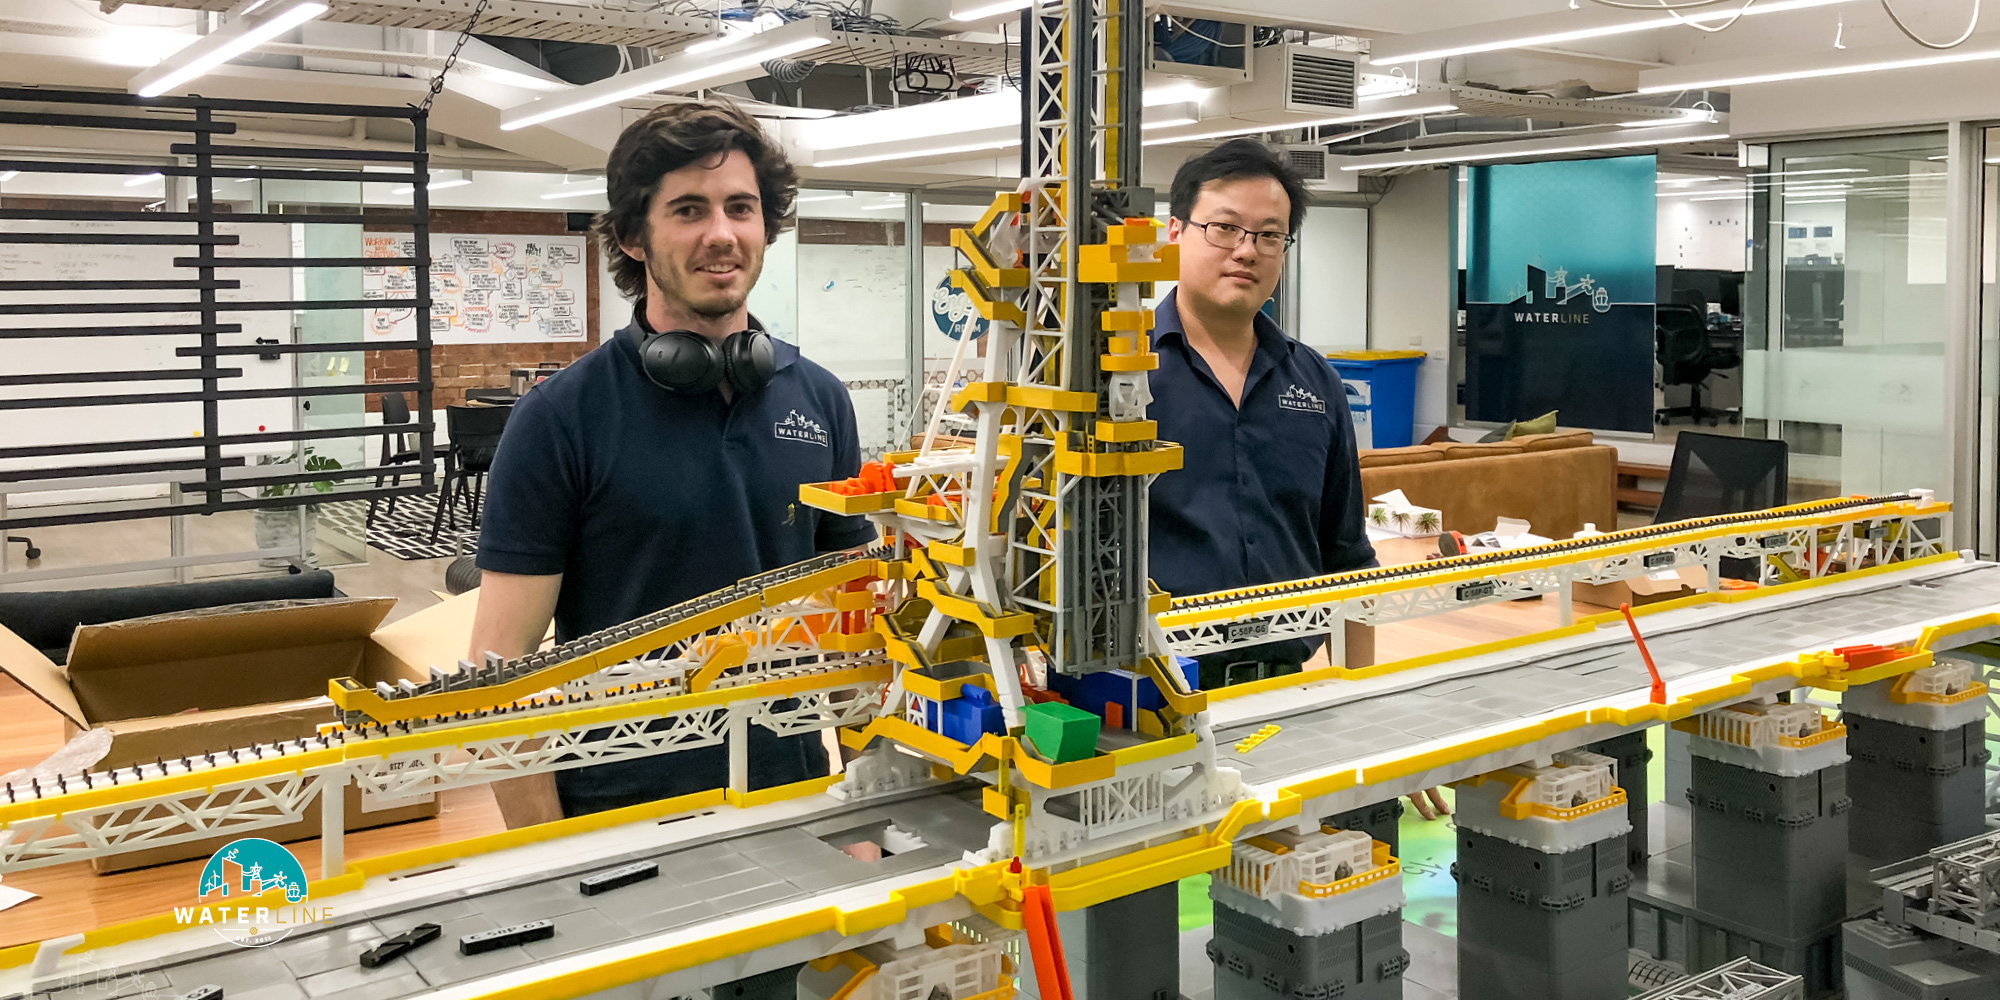 Brenton and Mike during construction of the 3D-printed shiploader and berth